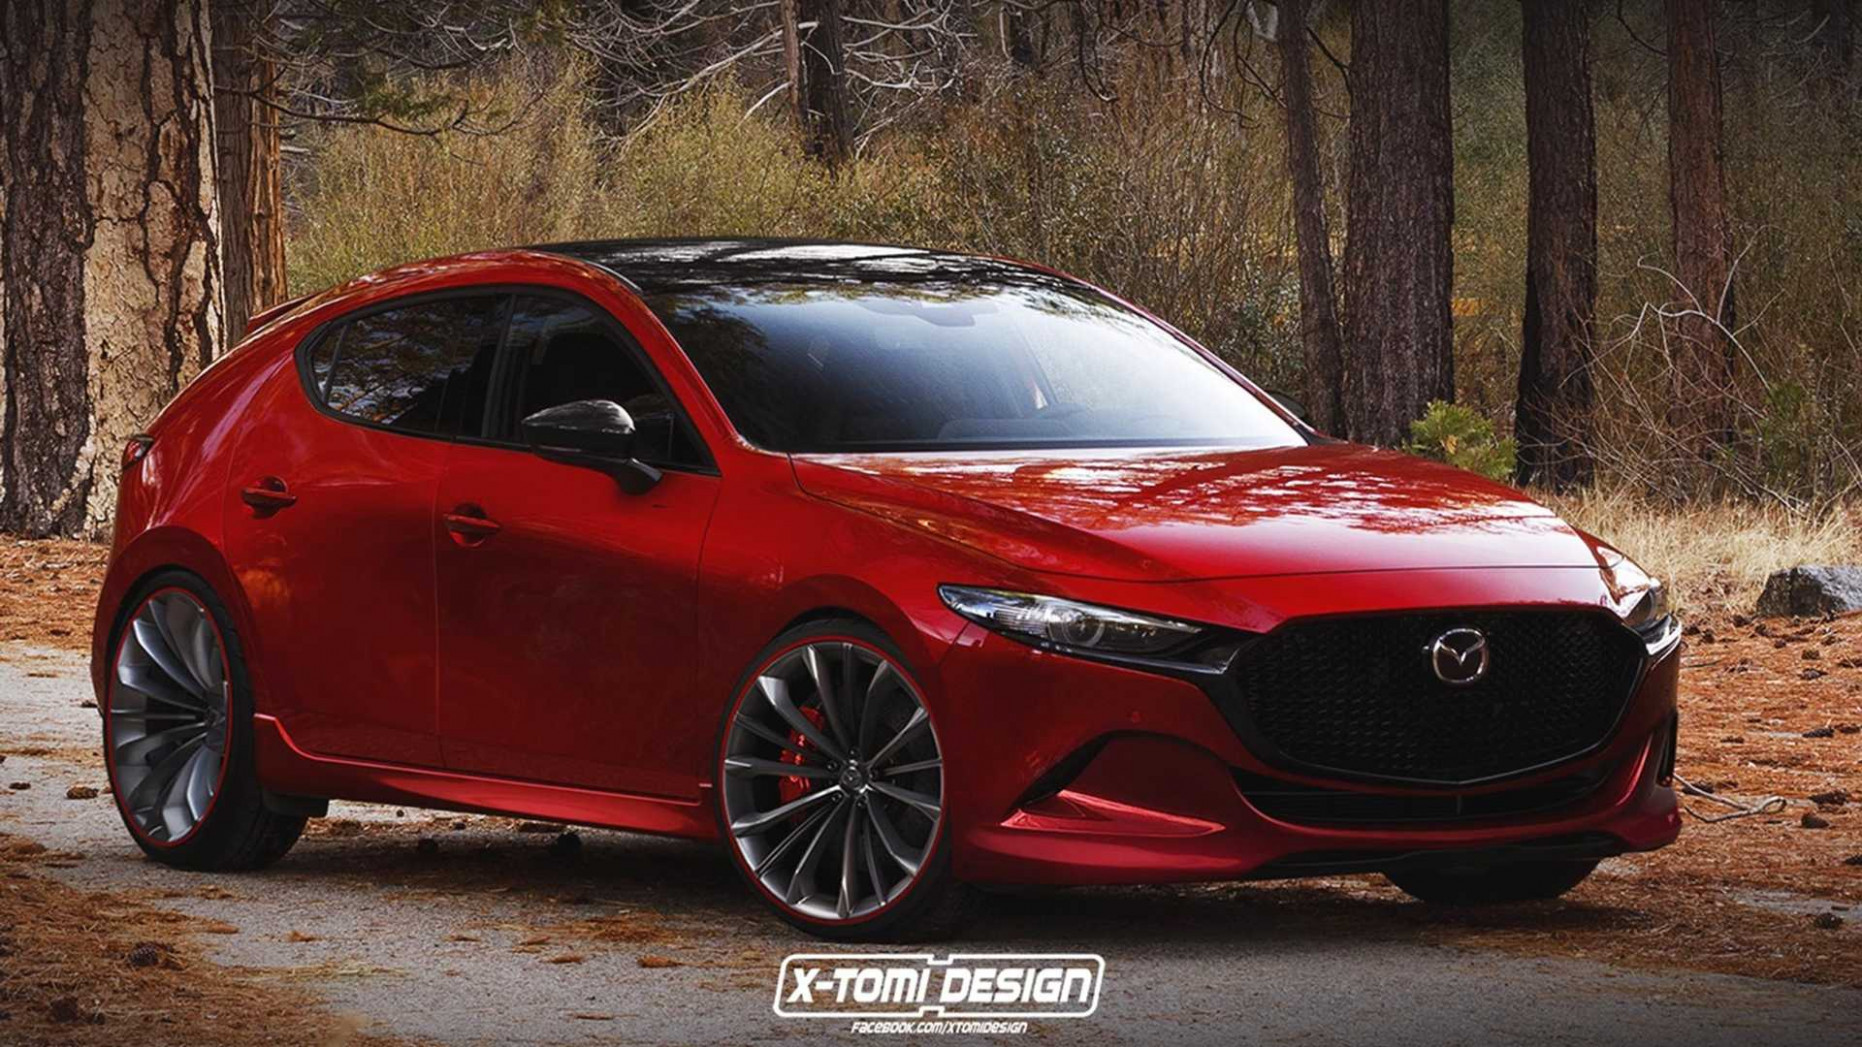 New Model and Performance 2022 Mazda 3 Hatch